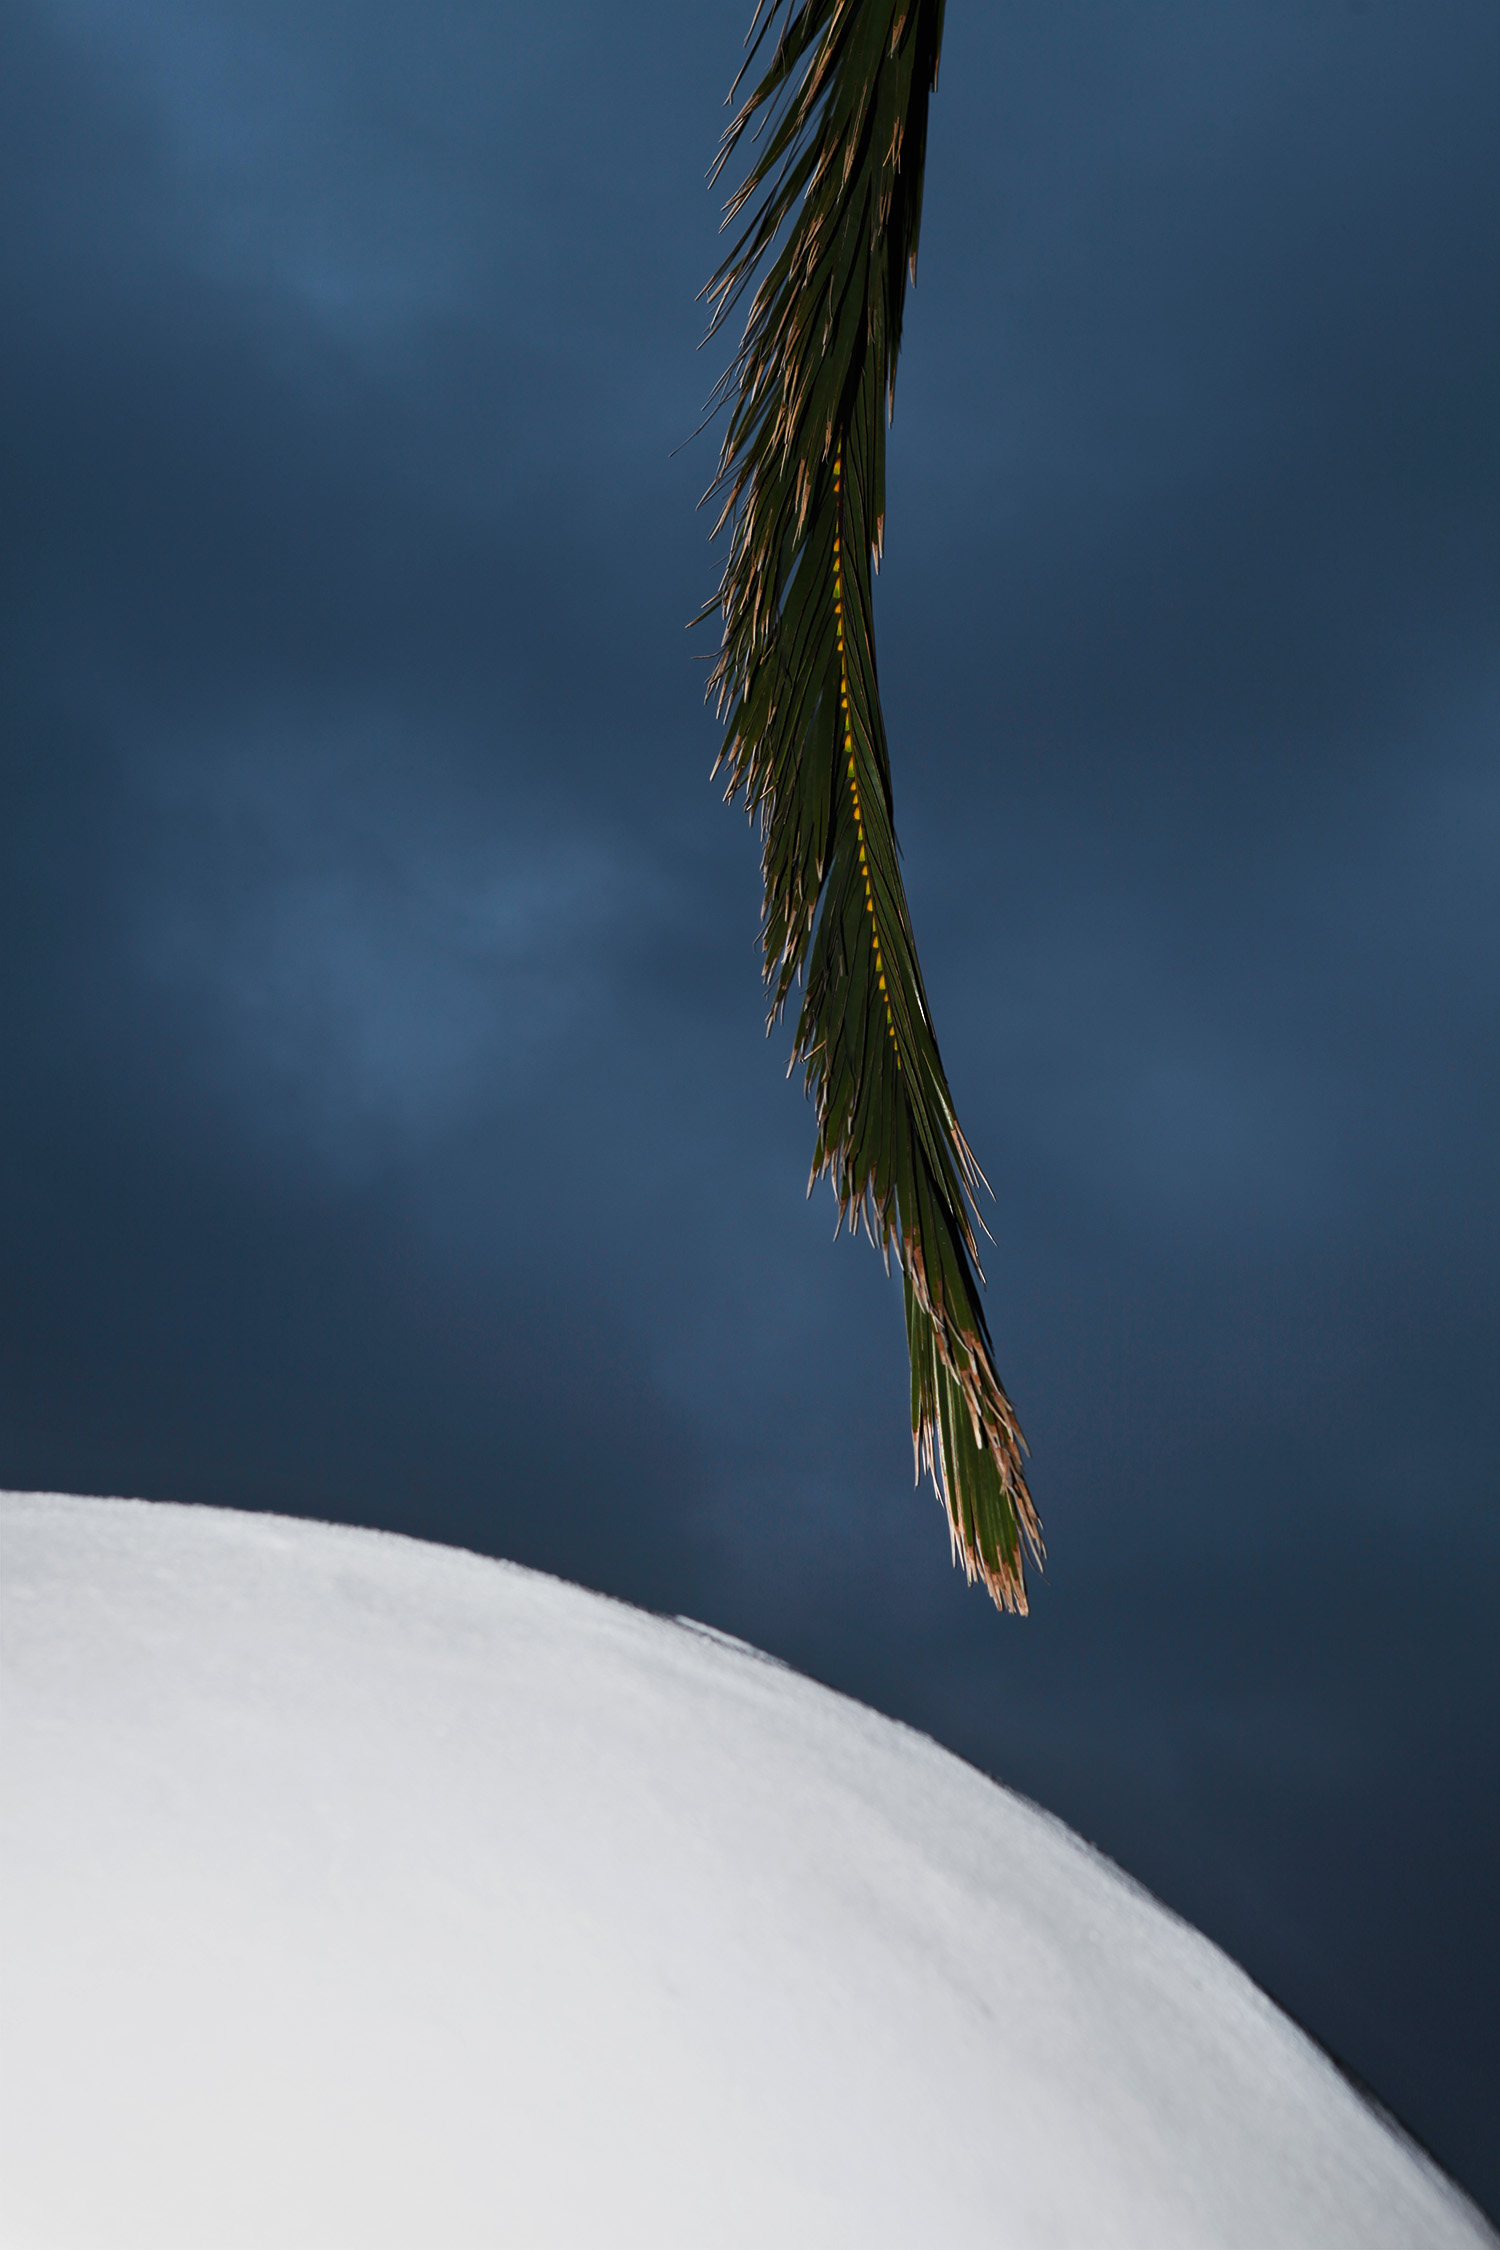 Justine Guerriat Microcosm series Moon Palm